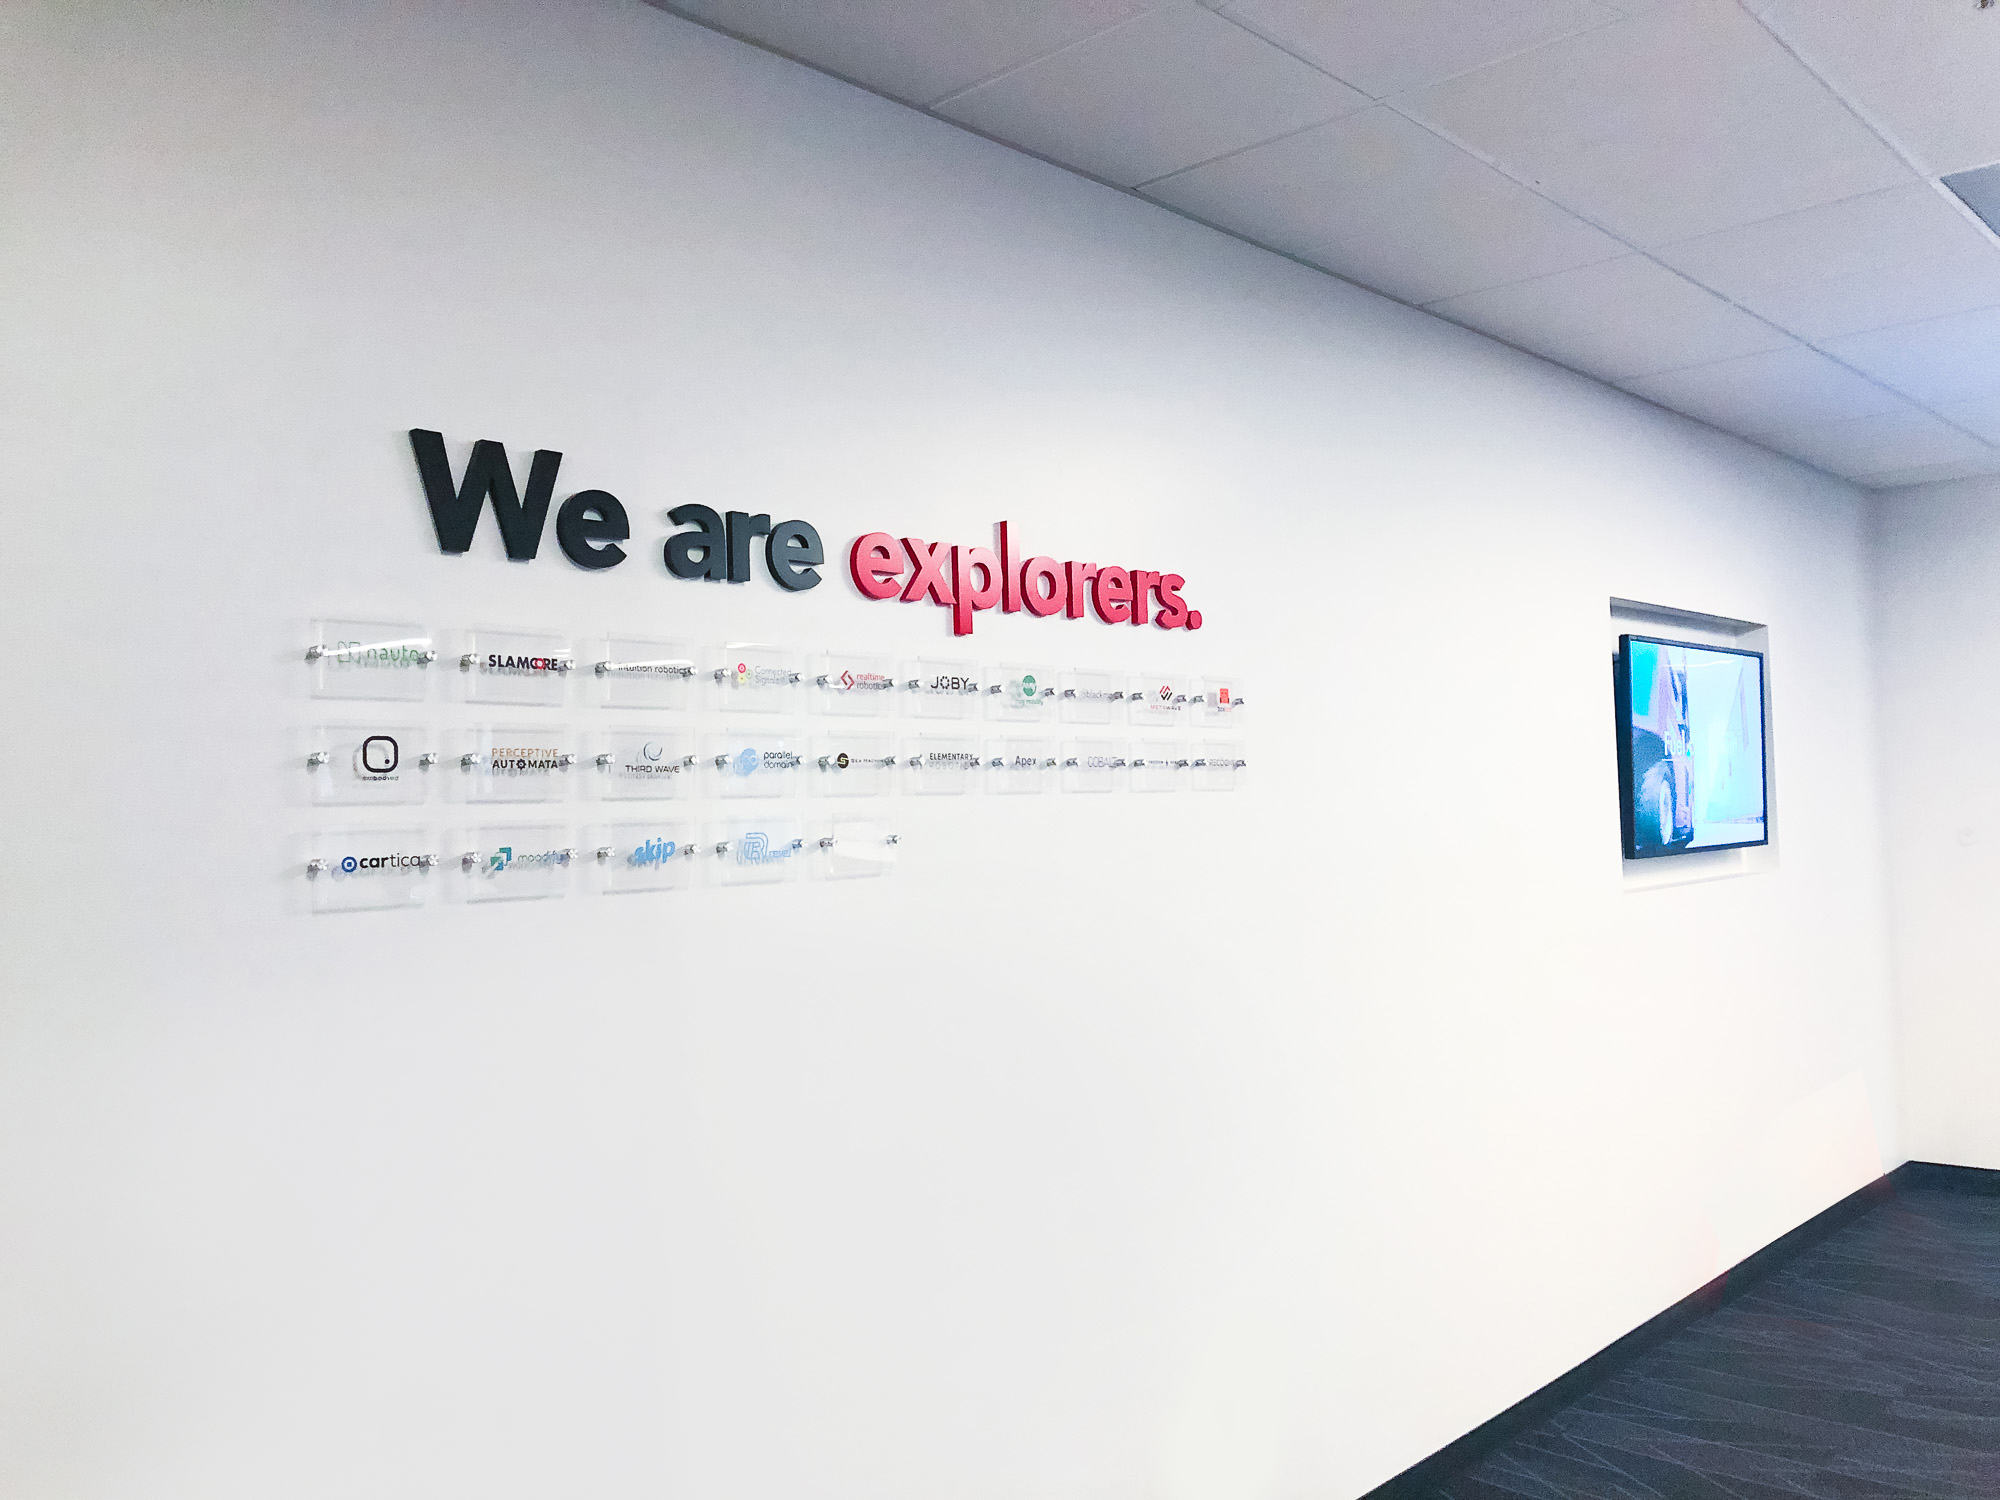 Mission statement and portfolio company logo wall for Toyota AI, a new venture capital subsidiary of the Toyota Research Institute.